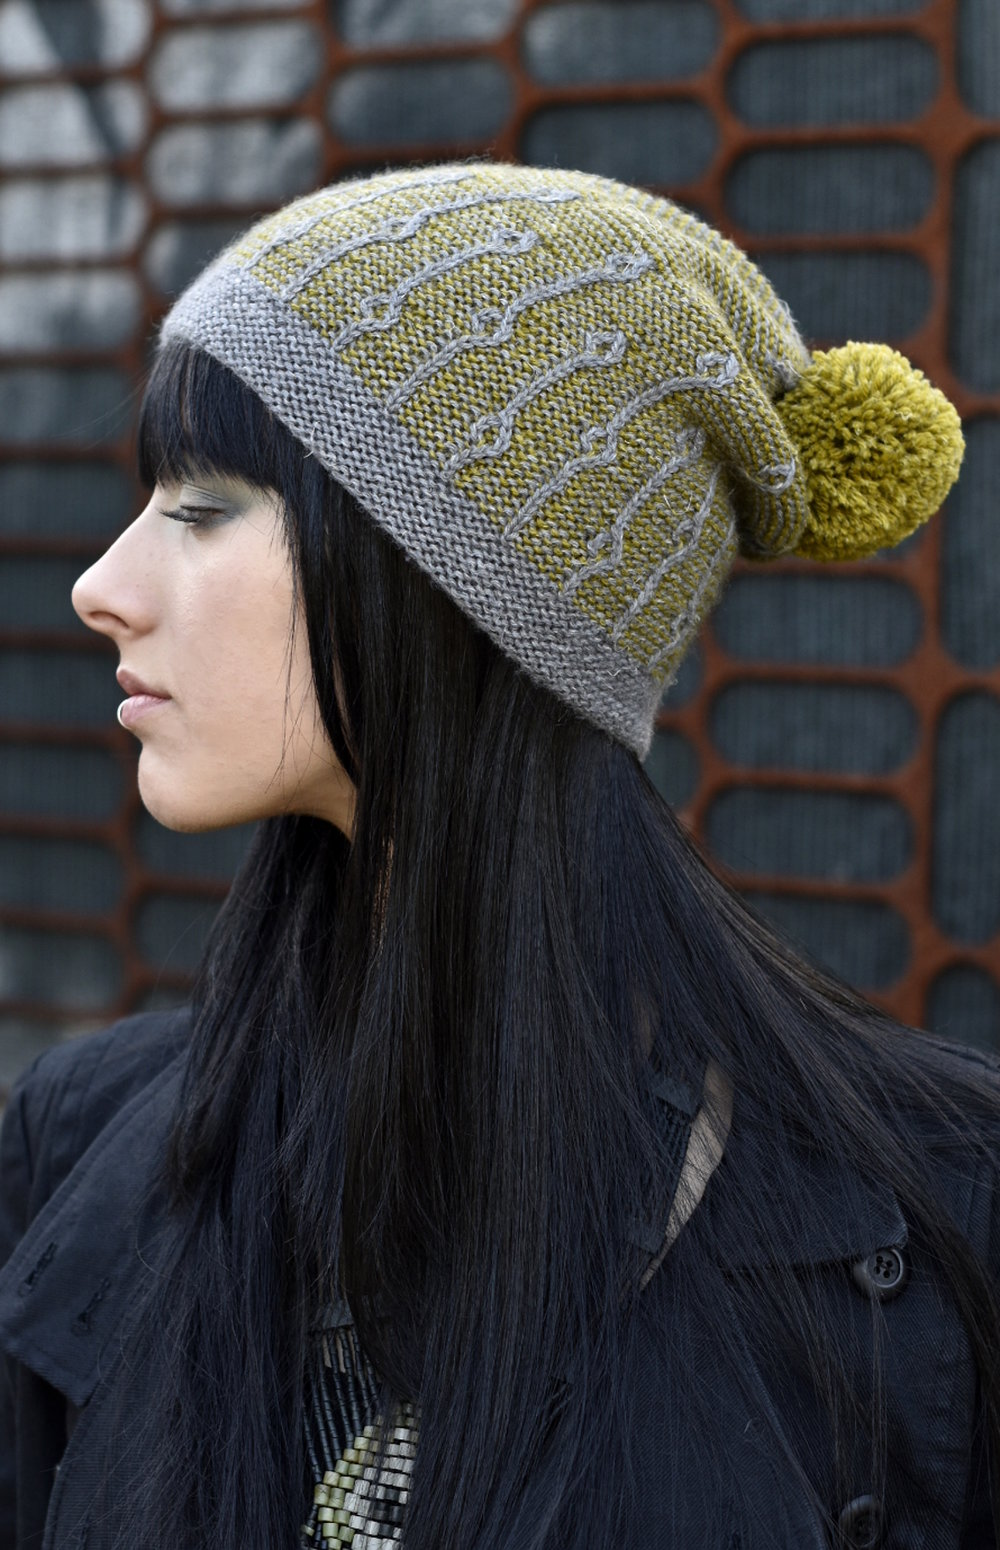 Joyce slipped stitch Hat hand knitting pattern